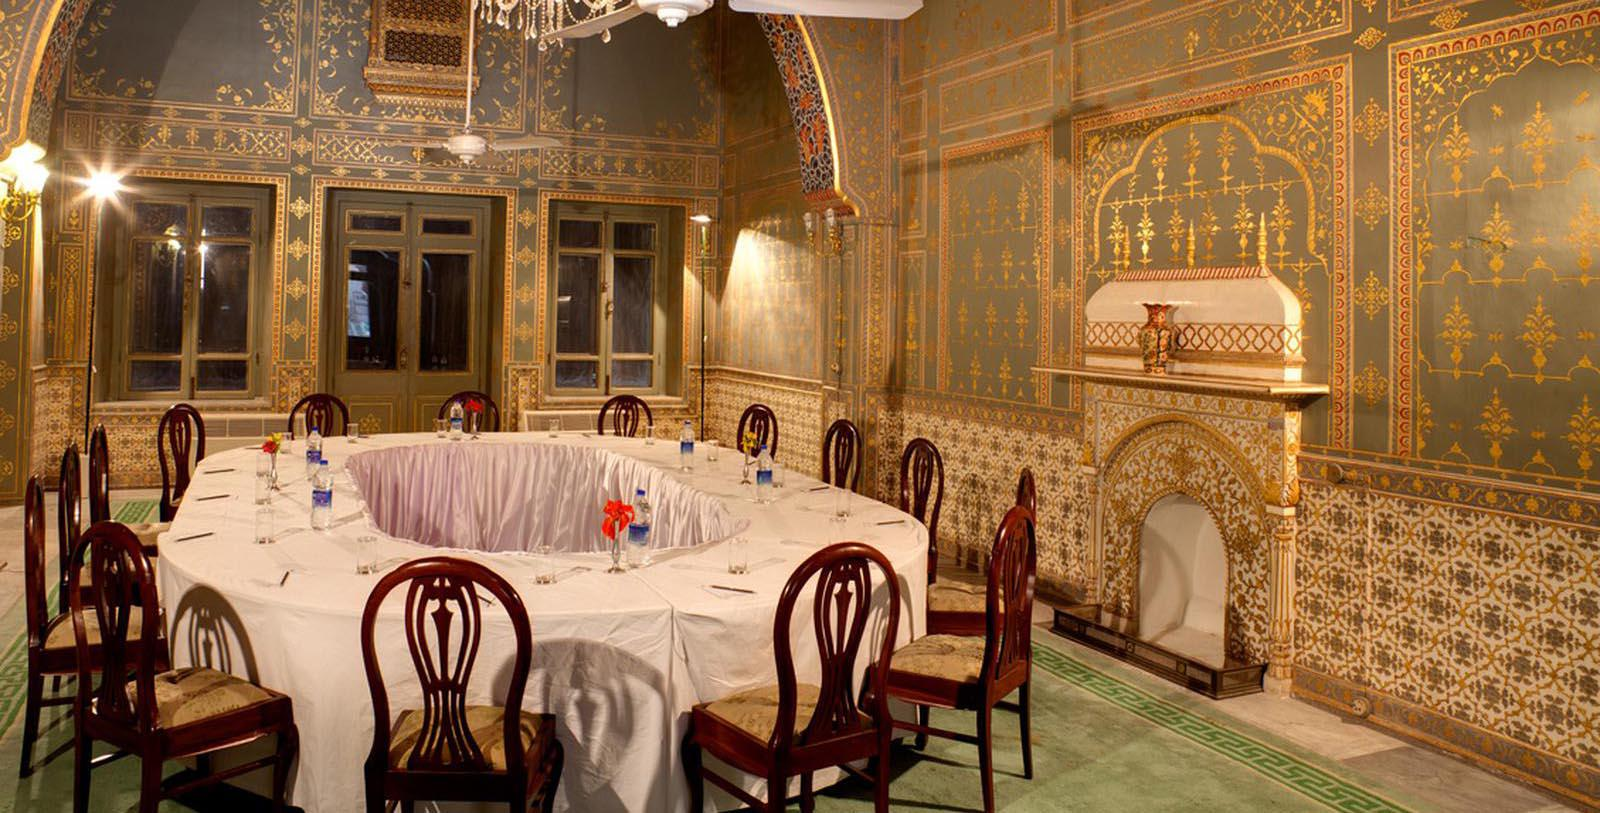 Image of Event Space Laxmi Niwas Palace, 1904, Member of Historic Hotels Worldwide, in Bikaner, India, Experience